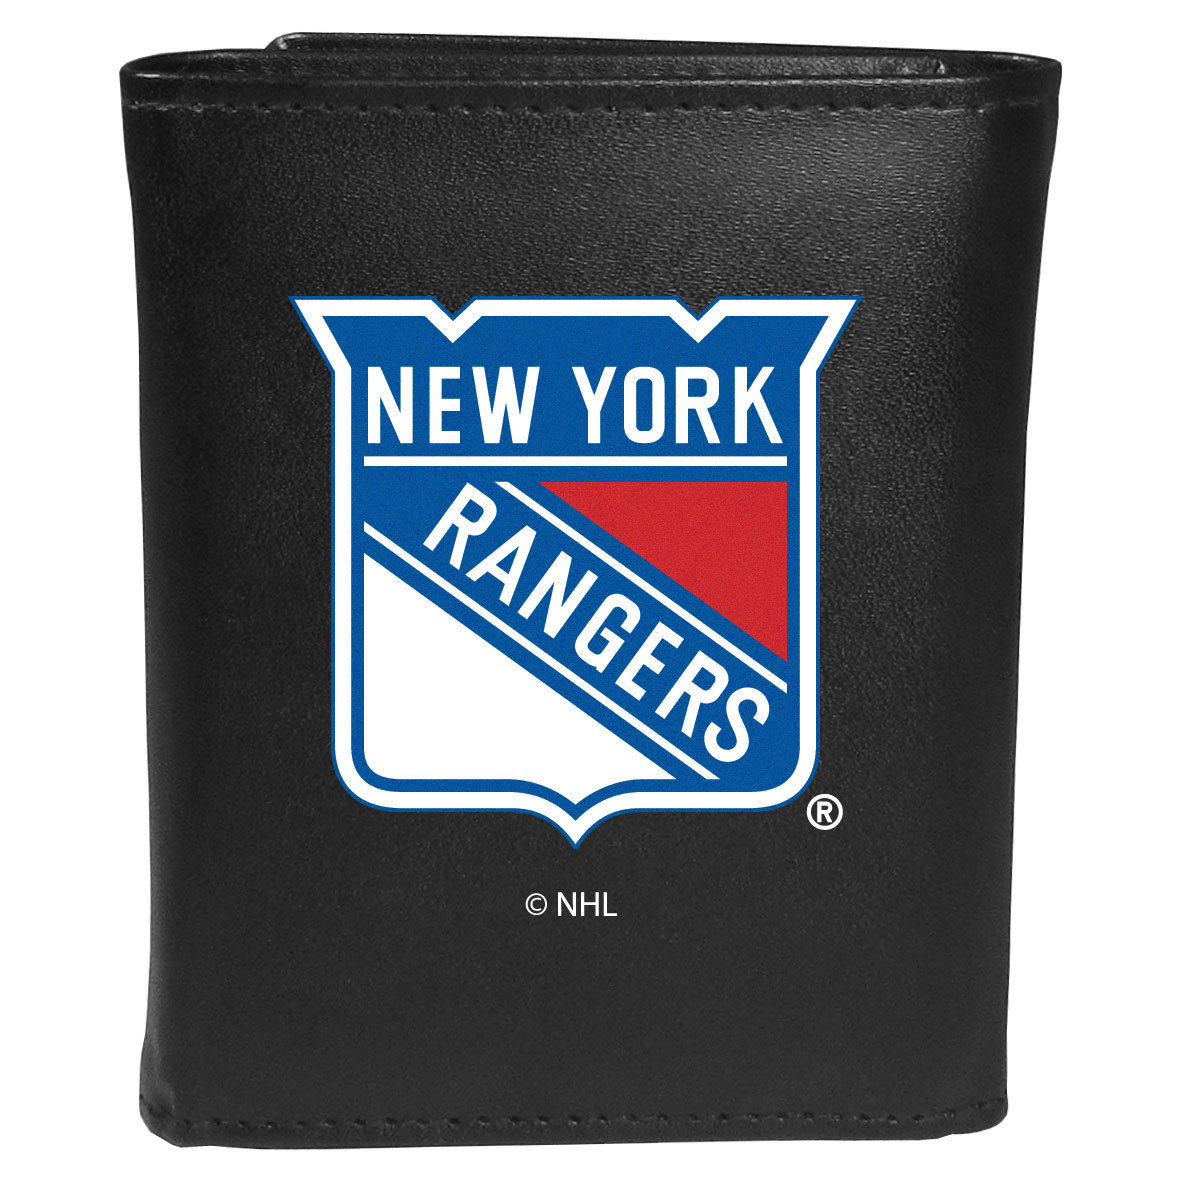 New York Rangers® Leather Tri-fold Wallet, Large Logo - Our classic fine leather tri-fold wallet is meticulously crafted with genuine leather that will age beautifully so you will have a quality wallet for years to come. This is fan apparel at its finest. The wallet is packed with organizational  features; lots of credit card slots, large billfold pocket, and a window ID slot. The front of the wallet features an extra large New York Rangers® printed logo.